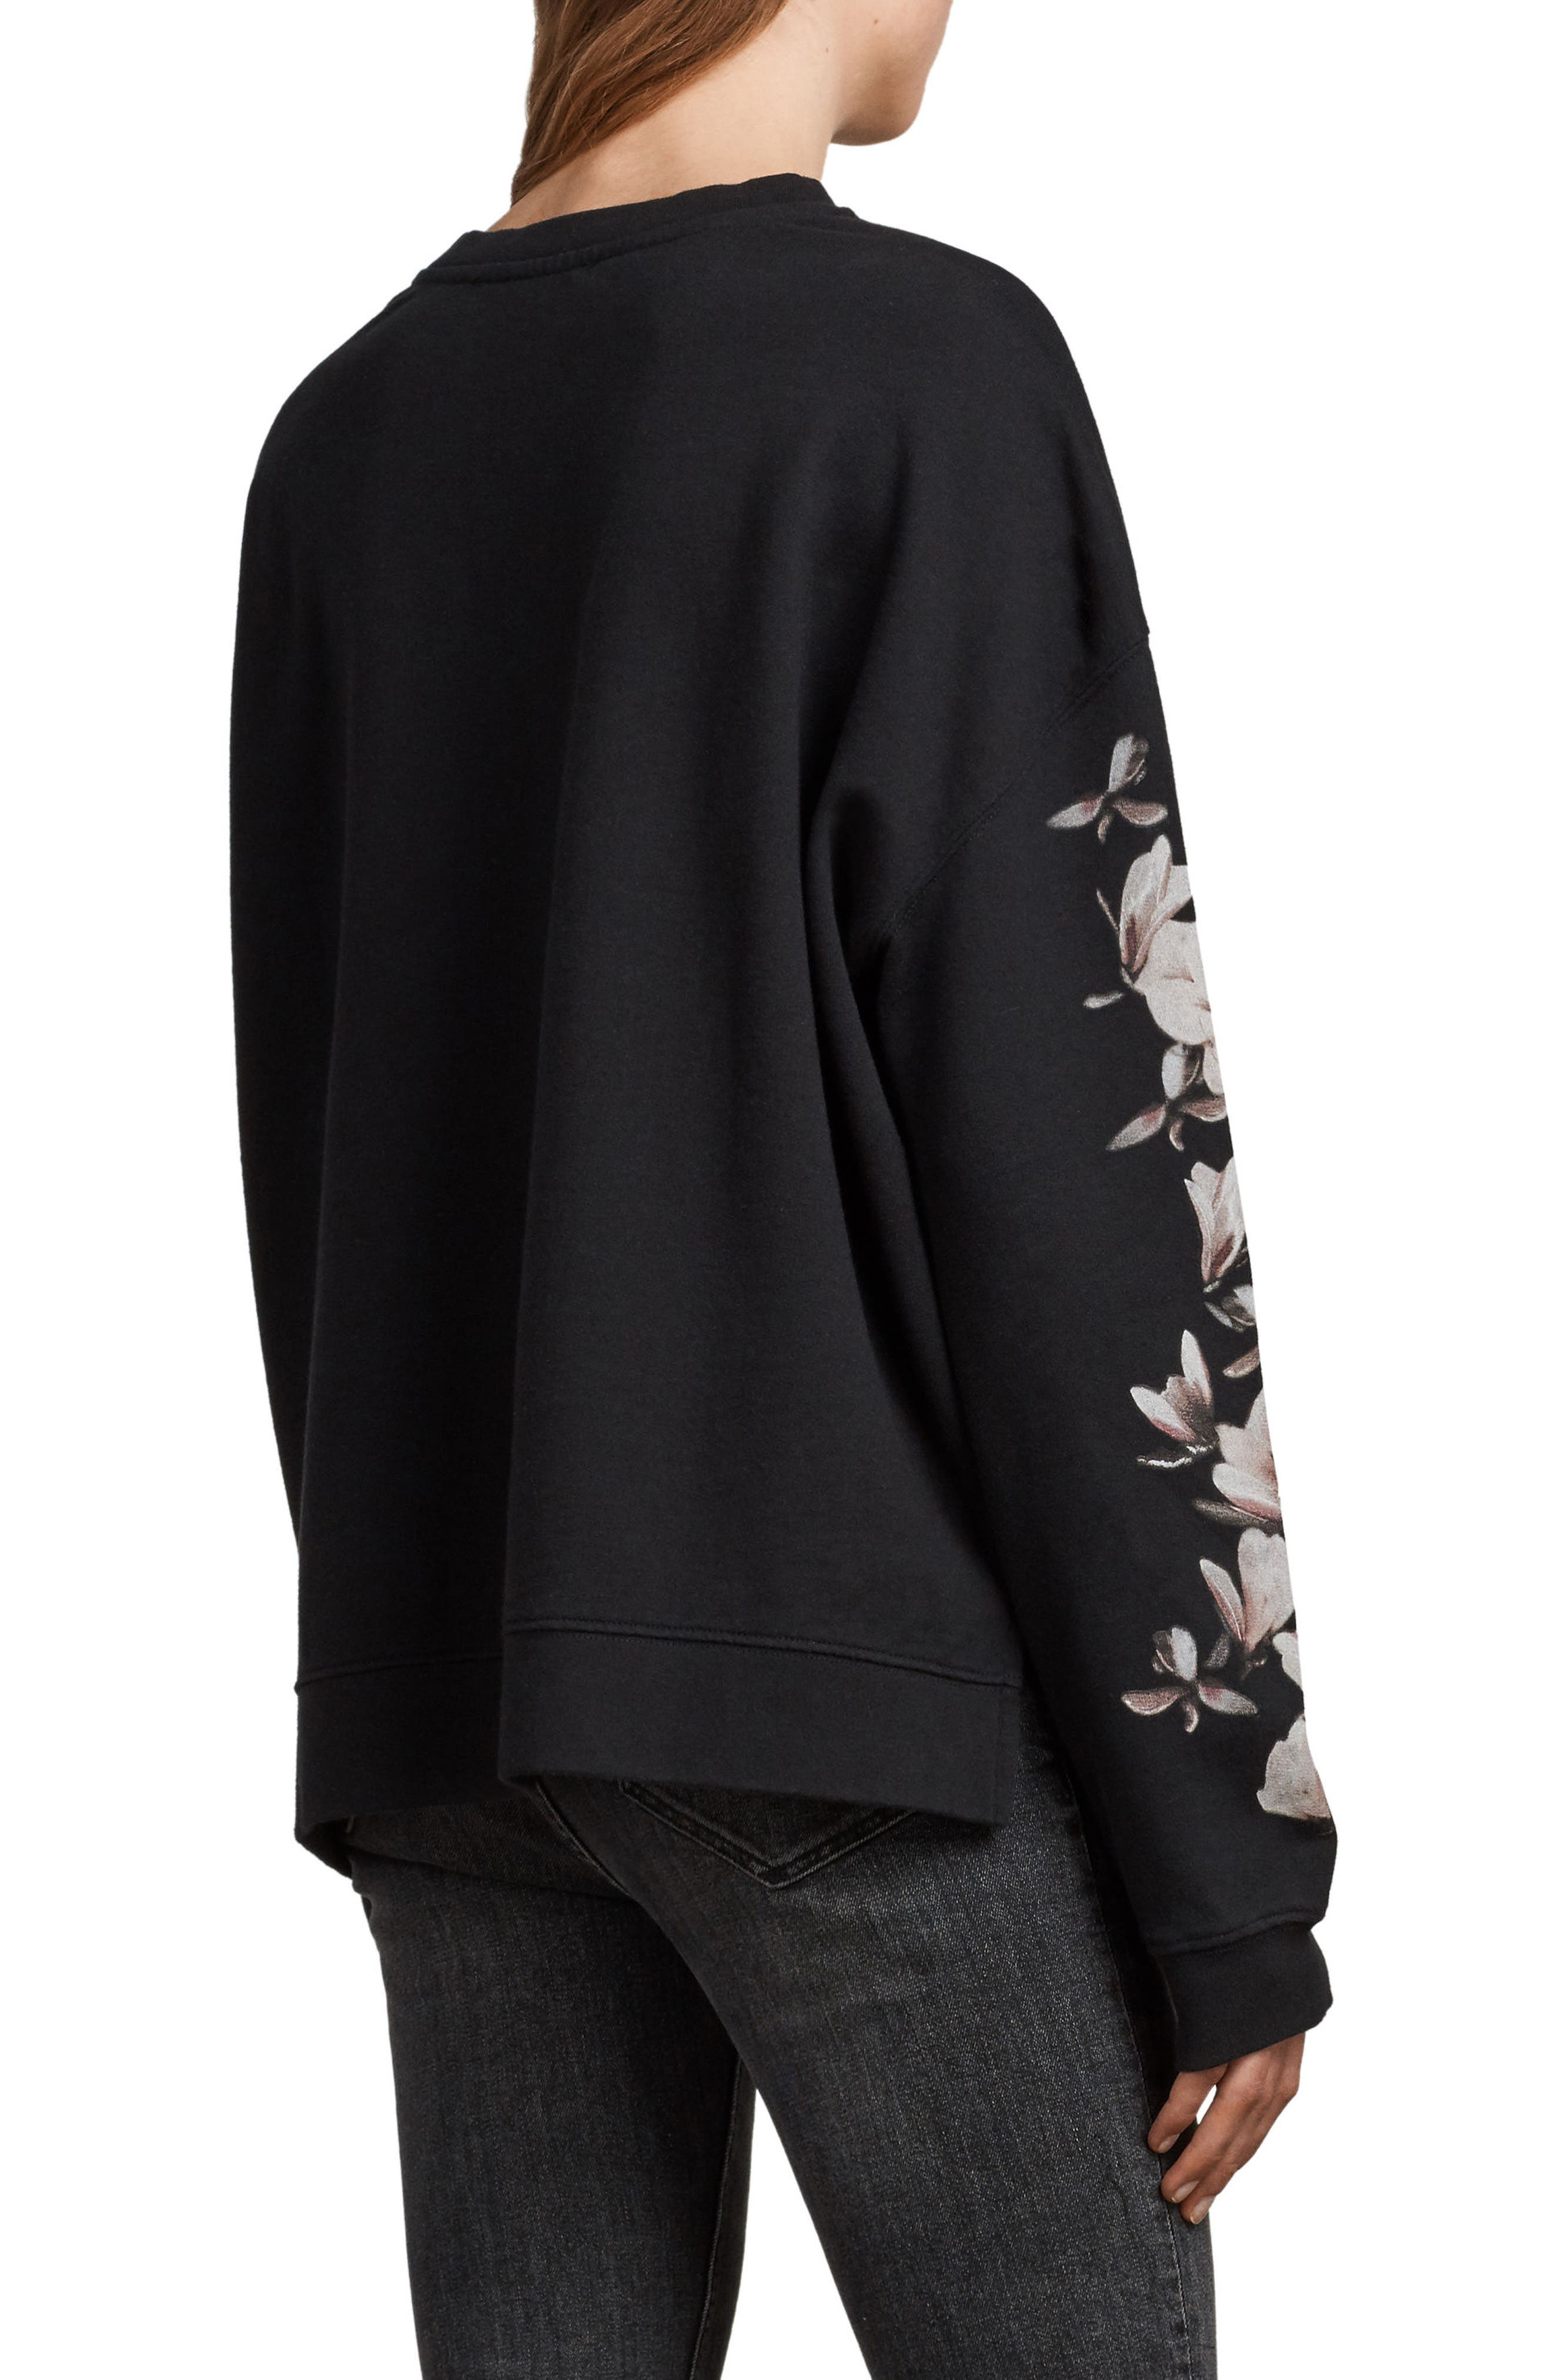 Magnolia Floral Print Cotton Sweatshirt,                             Alternate thumbnail 2, color,